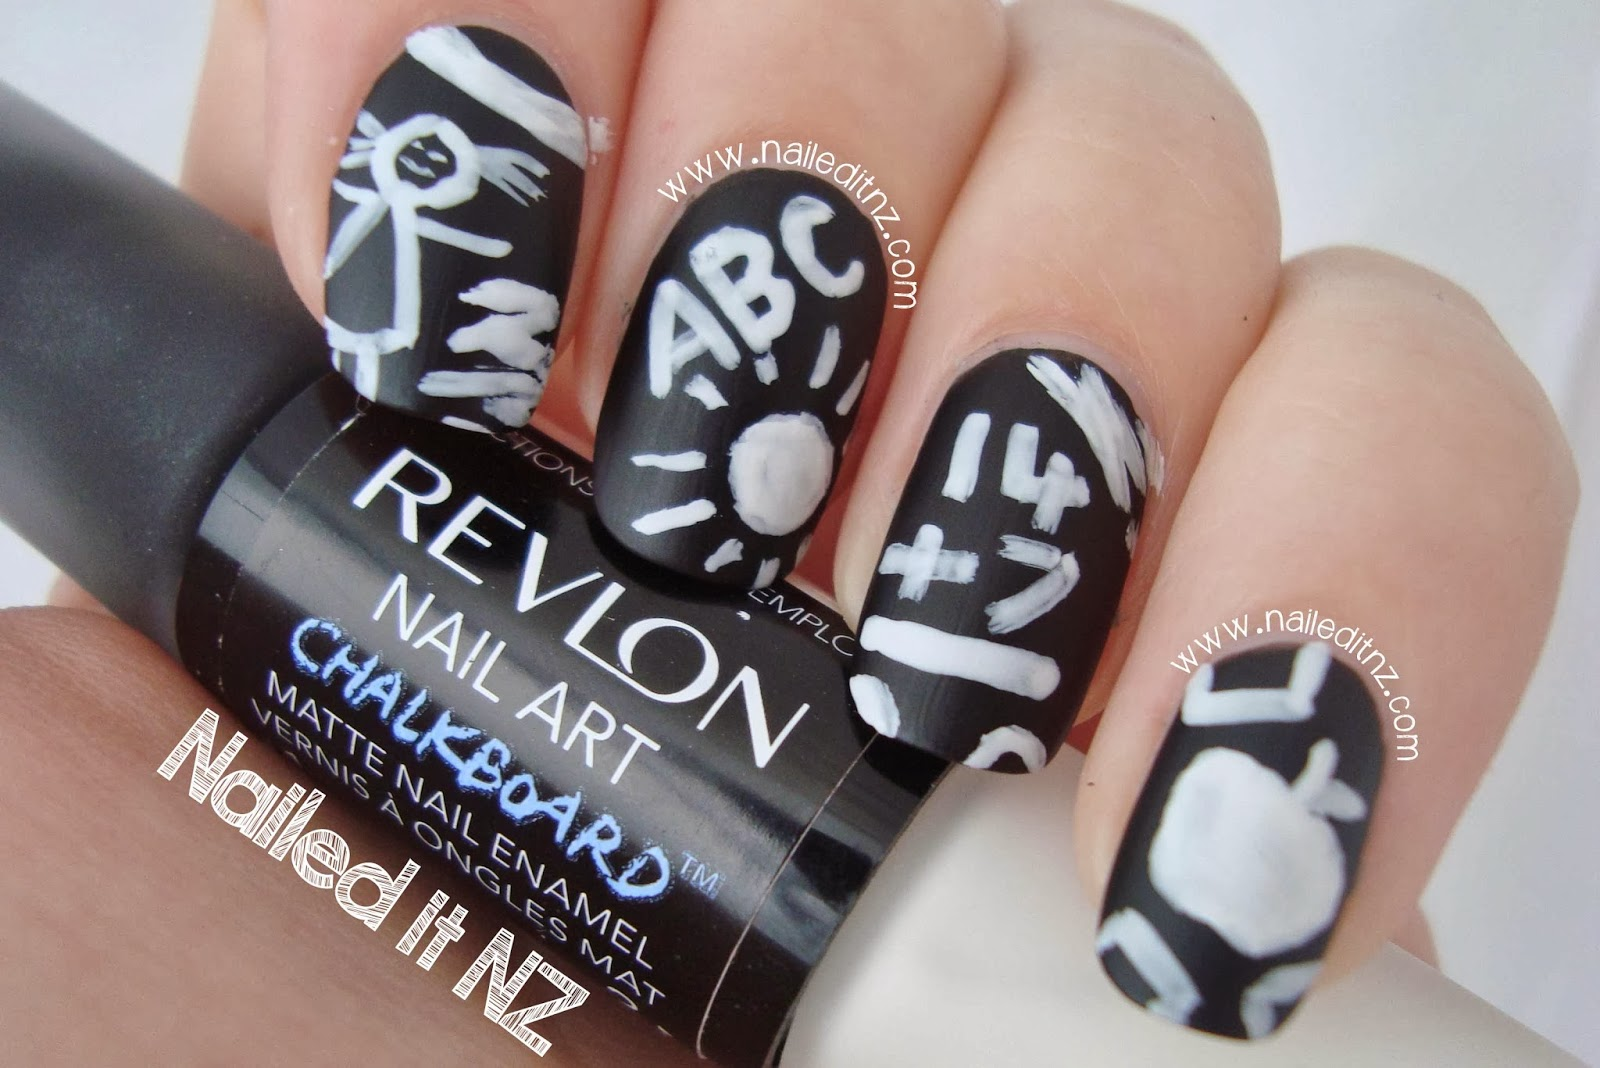 Revlon nail art chalkboard nails its really handy having the polish doubled sided one side is black with a normal brush and the other end is white with a thin nail art brush prinsesfo Gallery